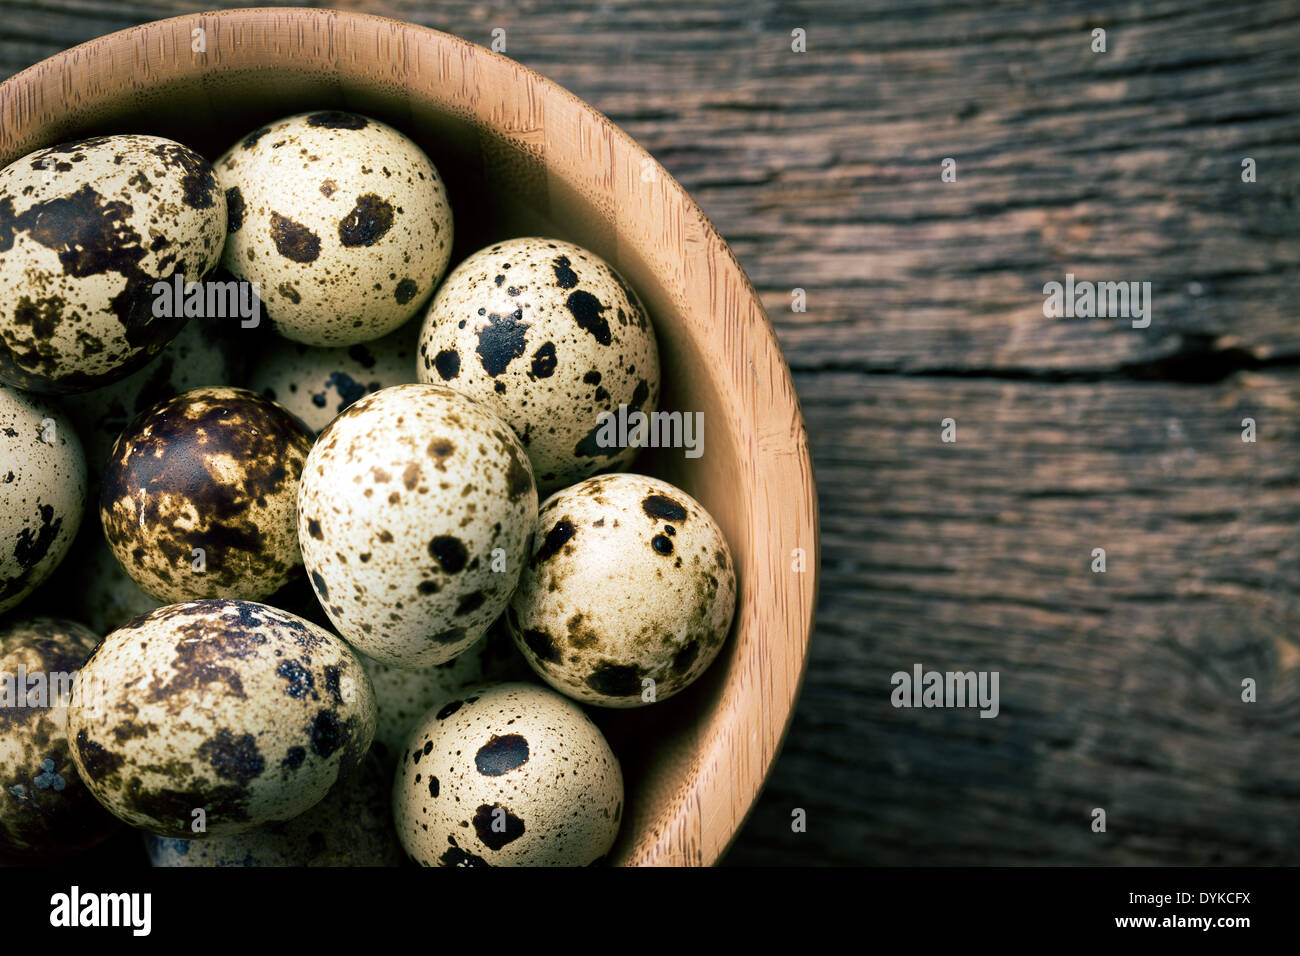 the top view of quail eggs in bowl Stock Photo